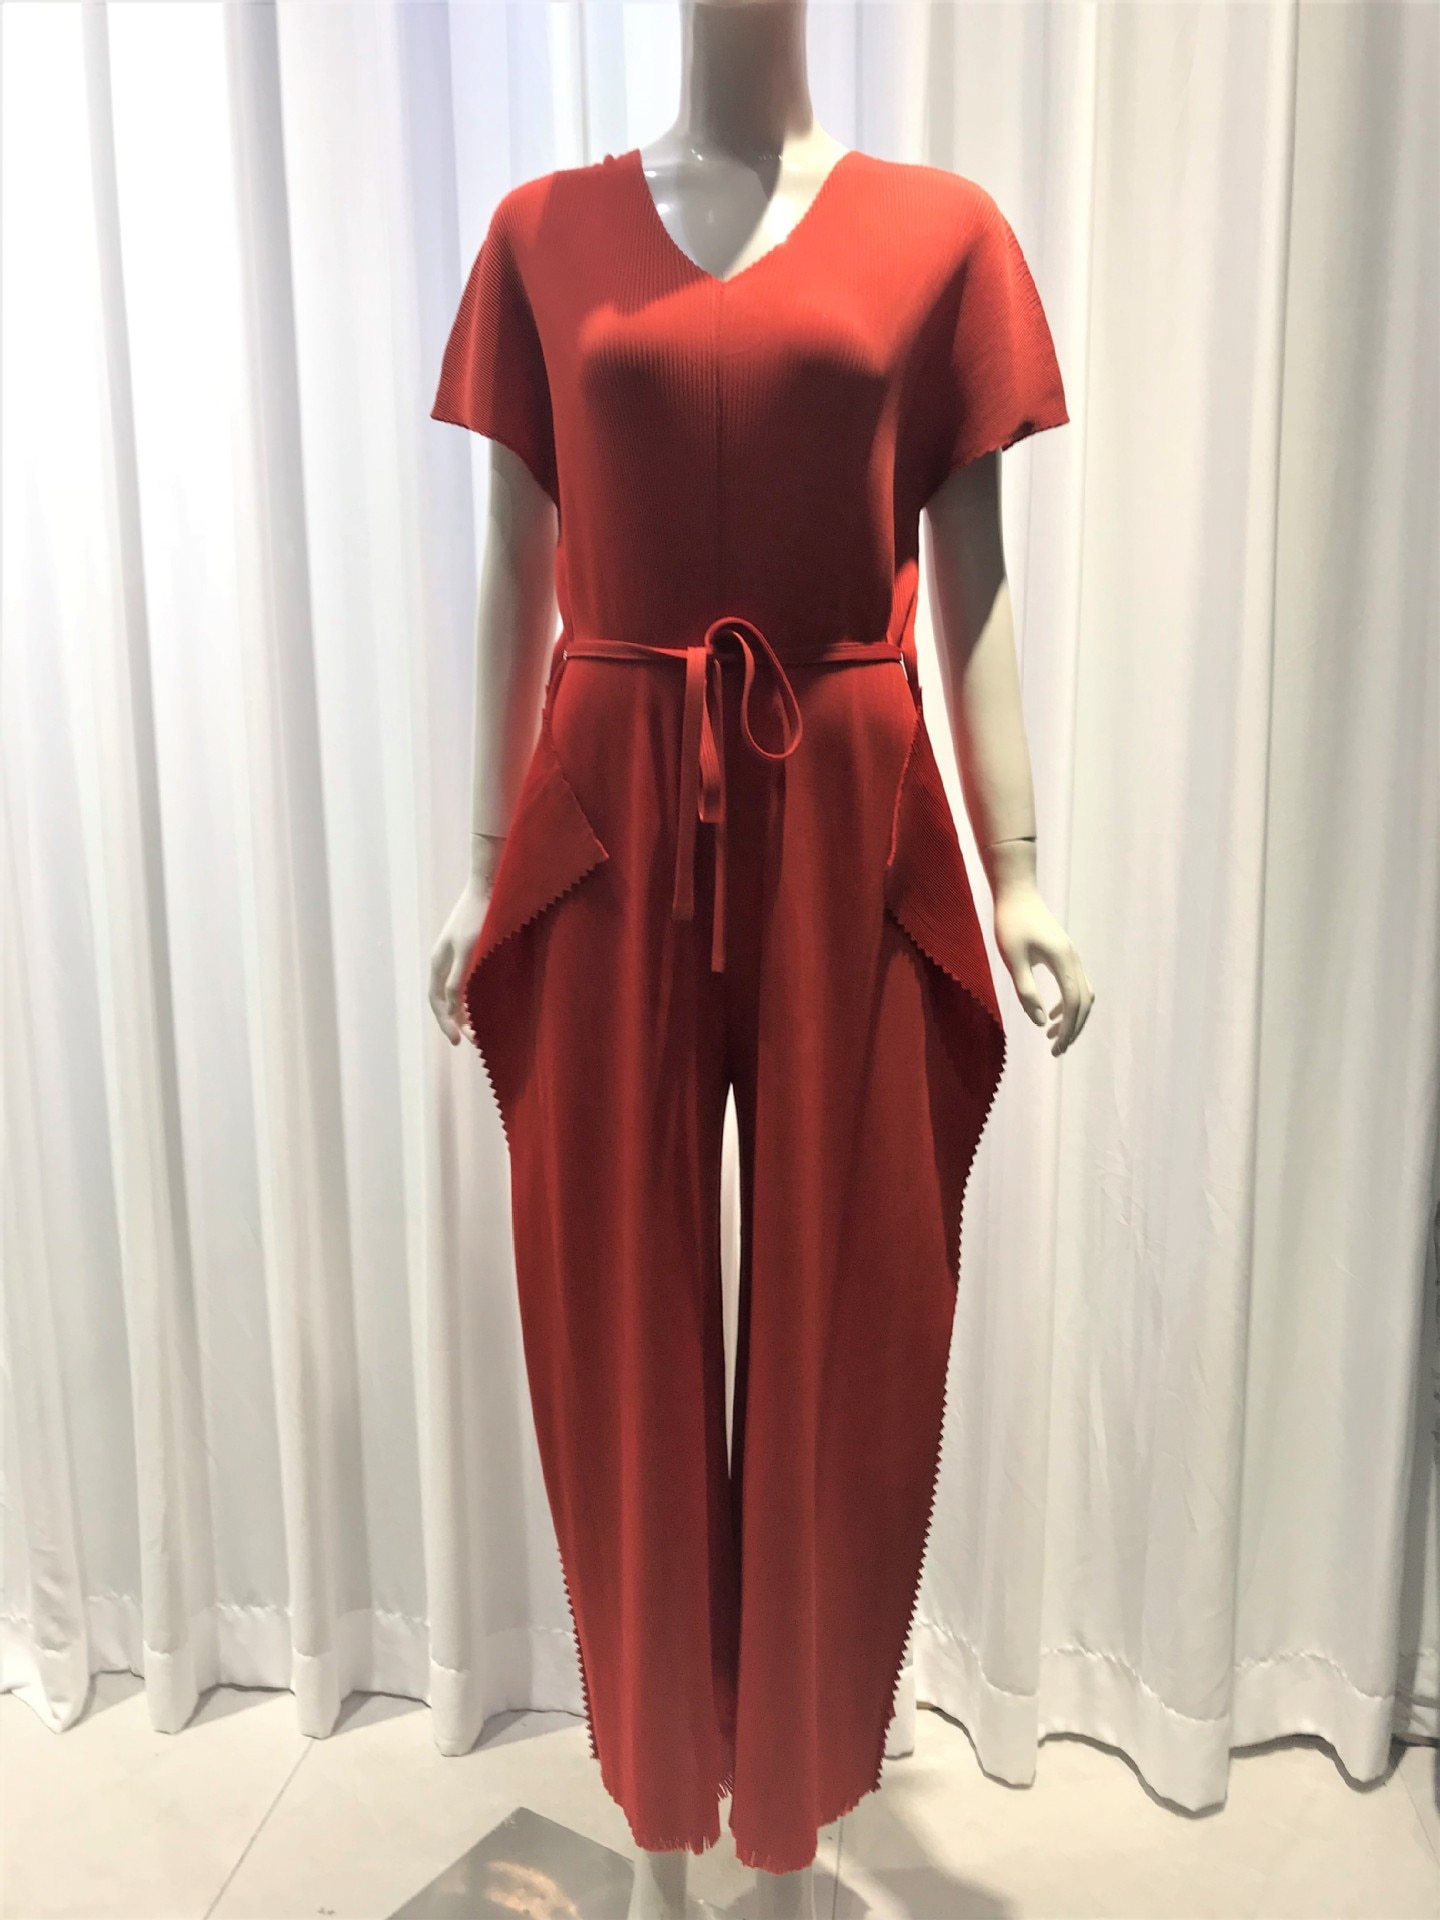 Changpleat 2021 elegant jumpsuits for women Miyak Pleated Fashion Solid Wear a belt Female one piece outfit wide leg jumpsuit